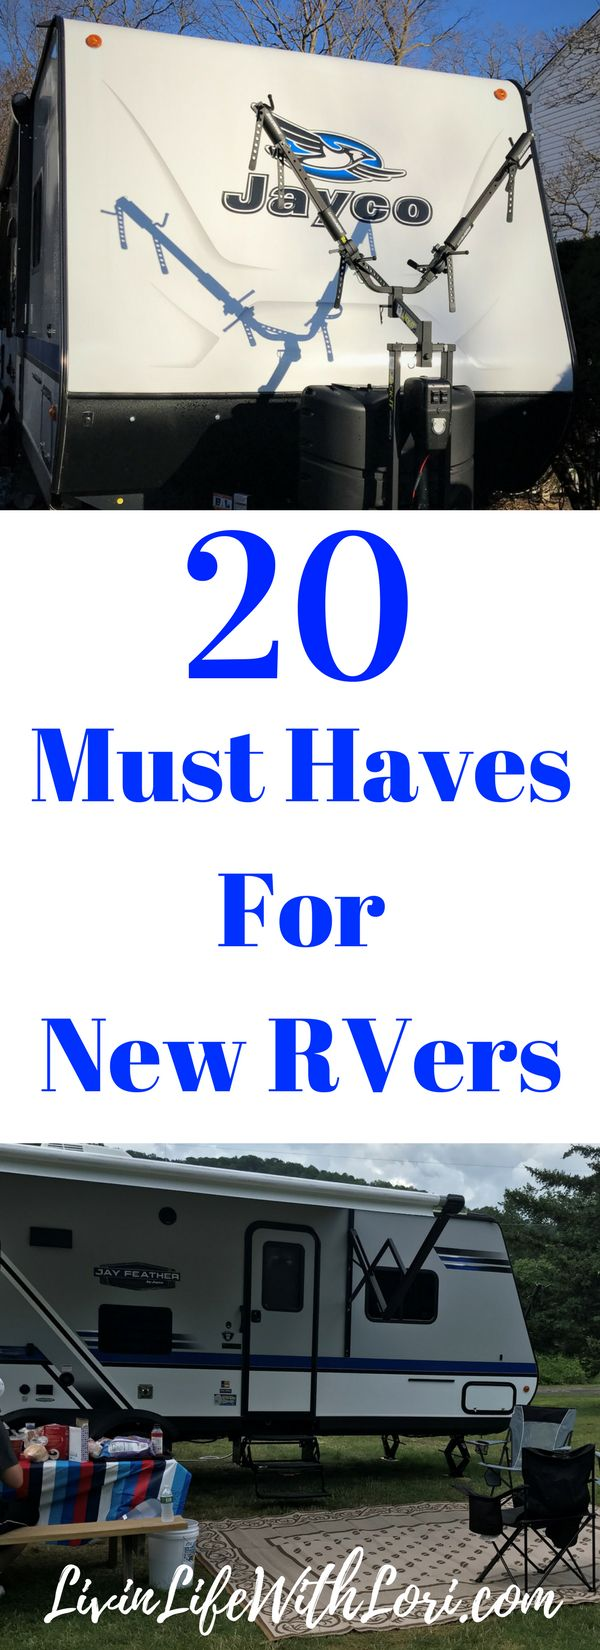 Check out these 20 Must Haves you need for camping in your new RV!  www.livinlifewithlori.com